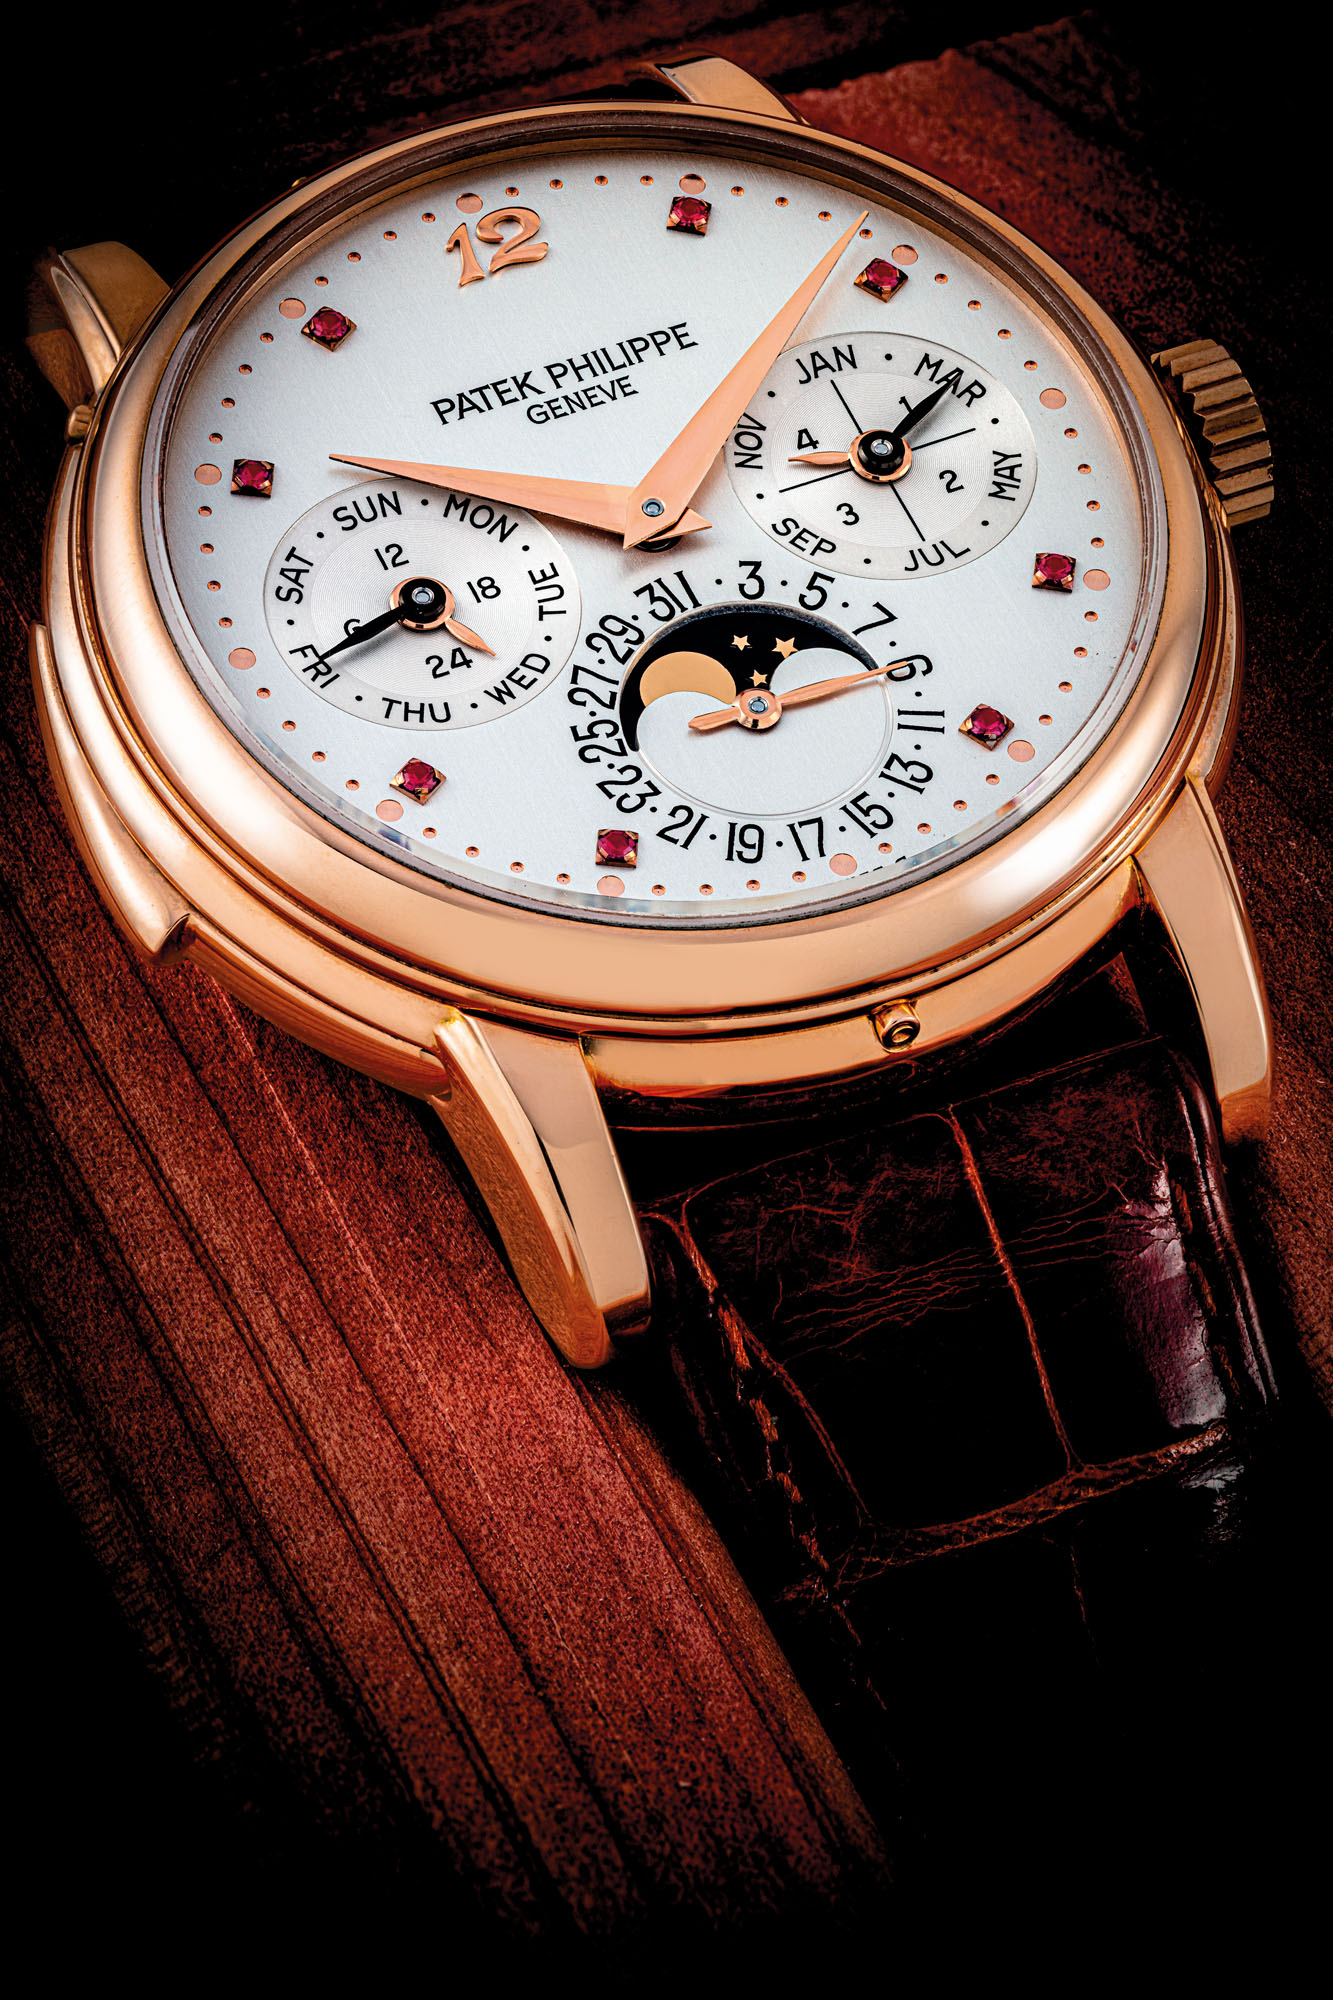 PATEK PHILIPPE. AN IMPORTANT AND POSSIBLY UNIQUE 18K PINK GOLD AUTOMATIC MINUTE REPEATING PERPETUAL CALENDAR WRISTWATCH WITH MOON PHASES, 24 HOUR AND LEAP YEAR INDICATION AND RUBY-SET DIAL